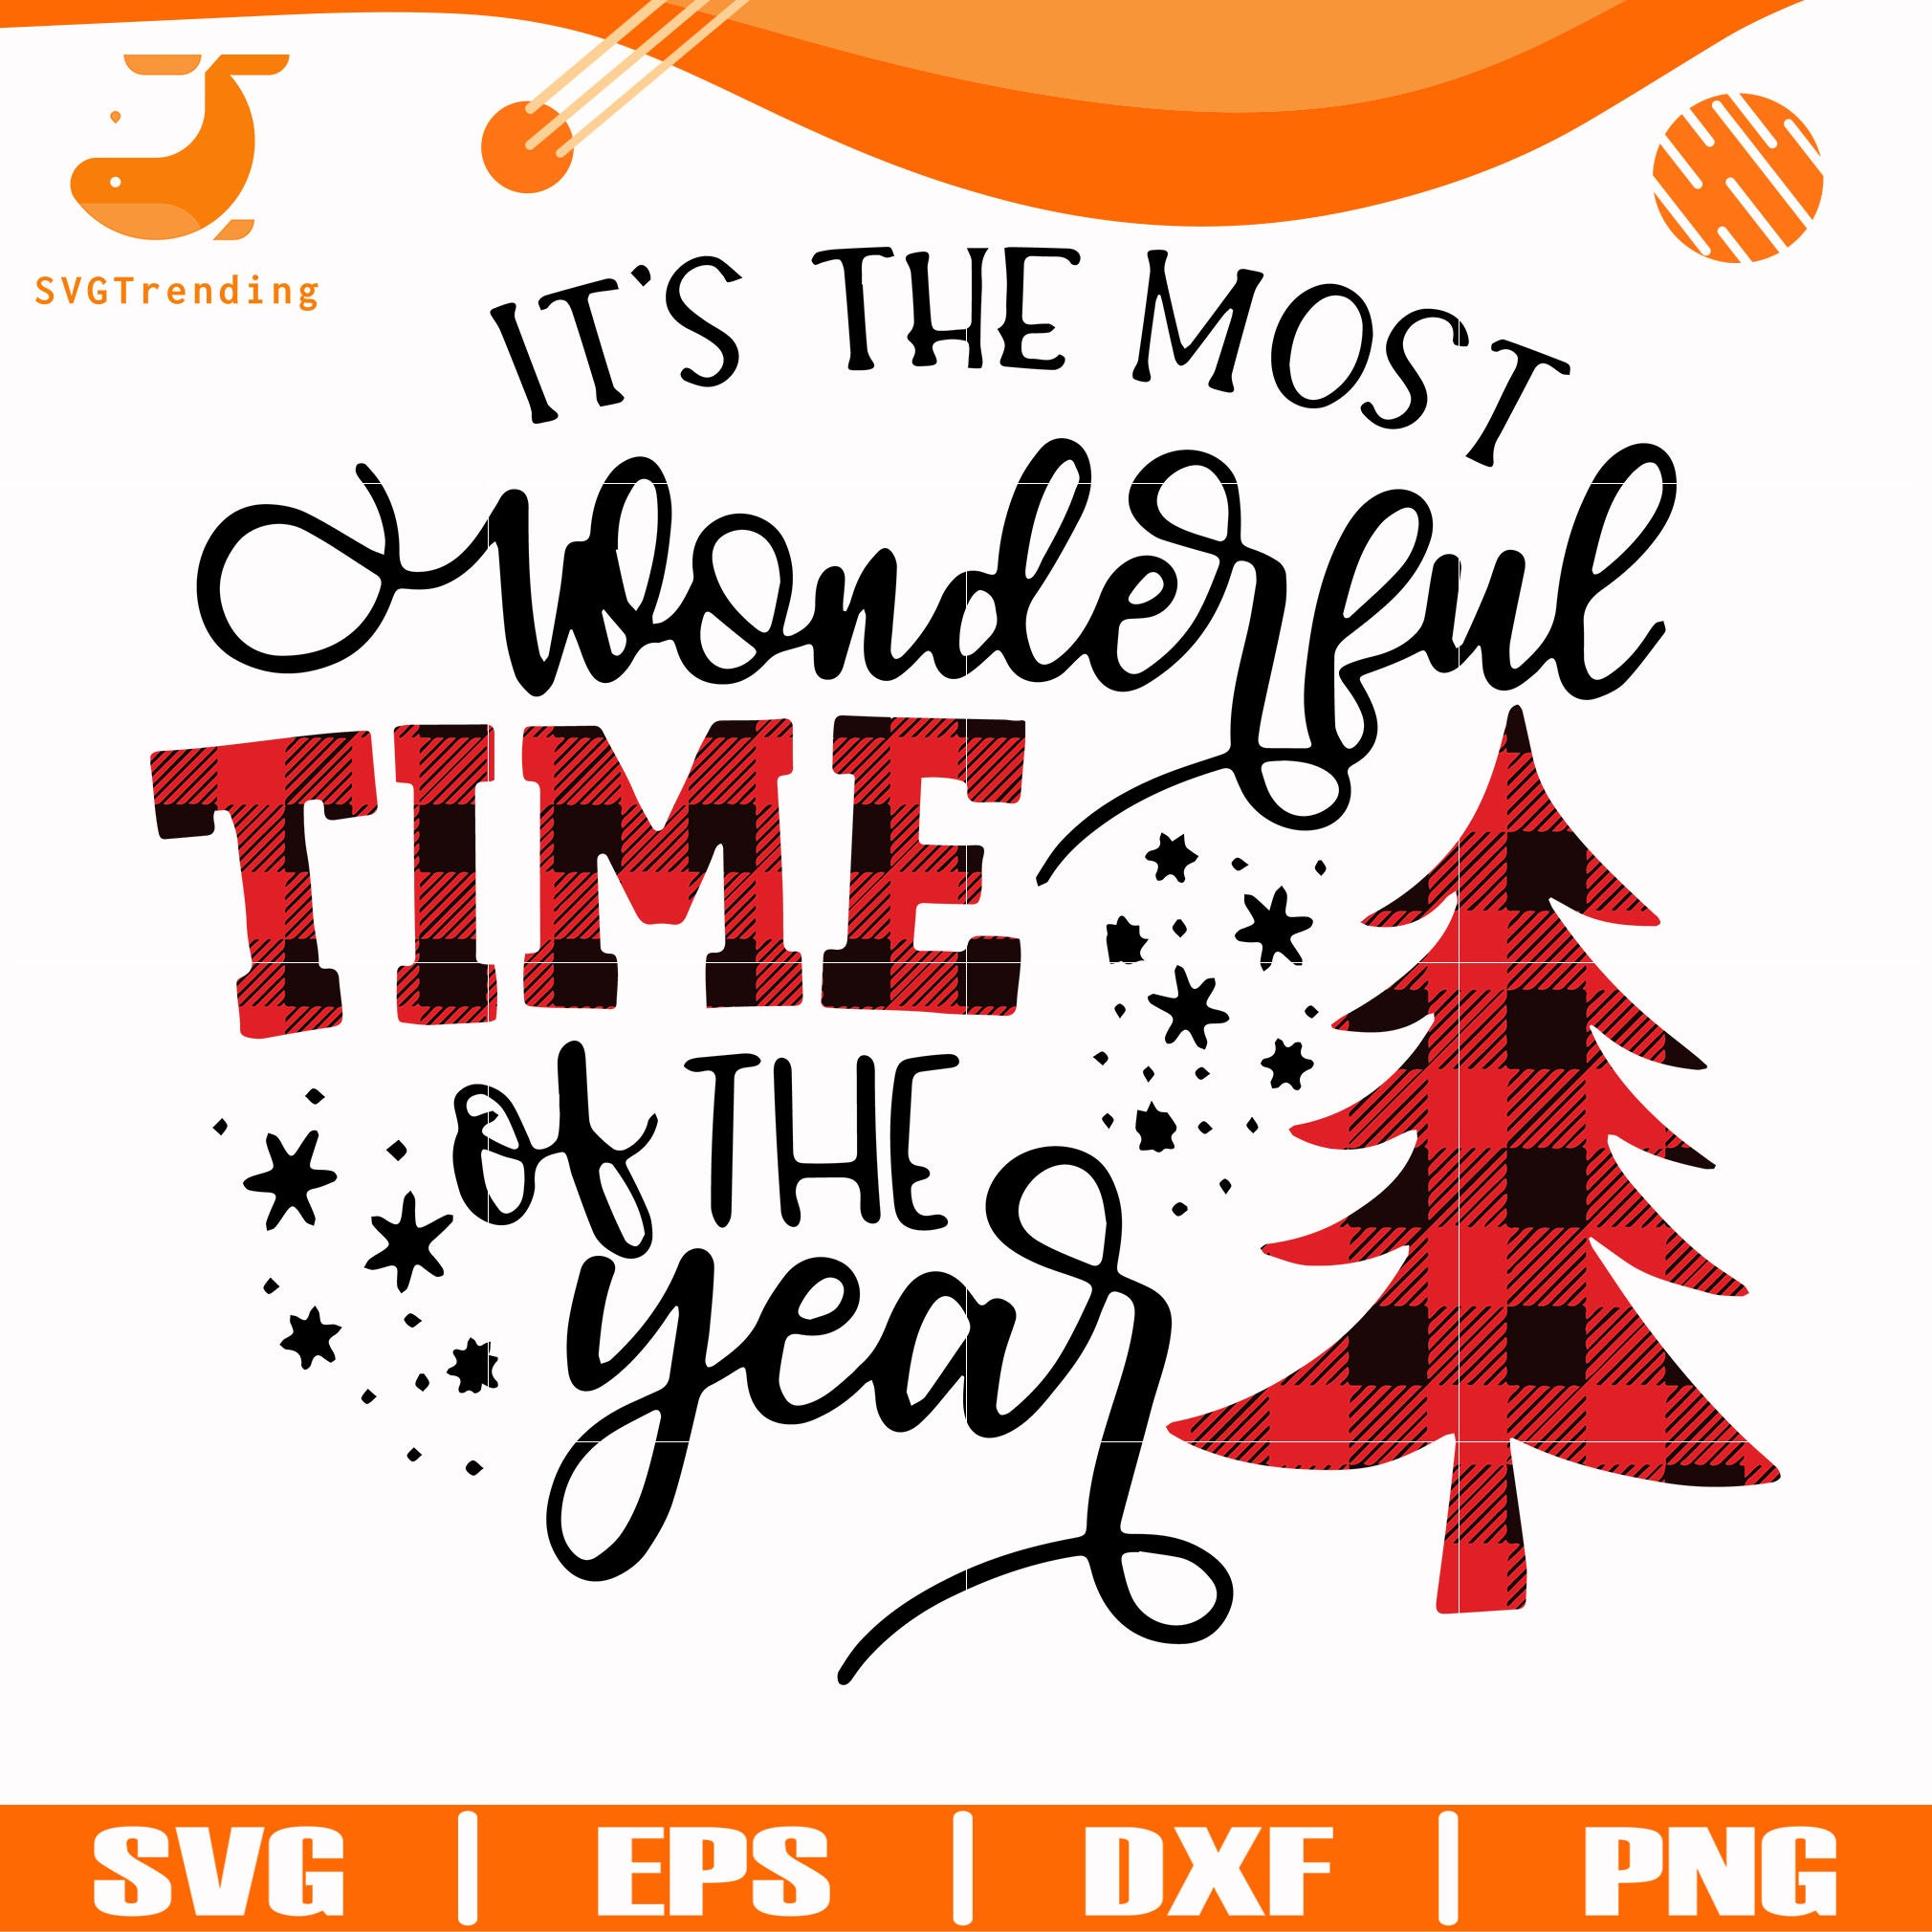 It's the most wonderful time of the year svg, png, dxf, eps digital file NCRM0153